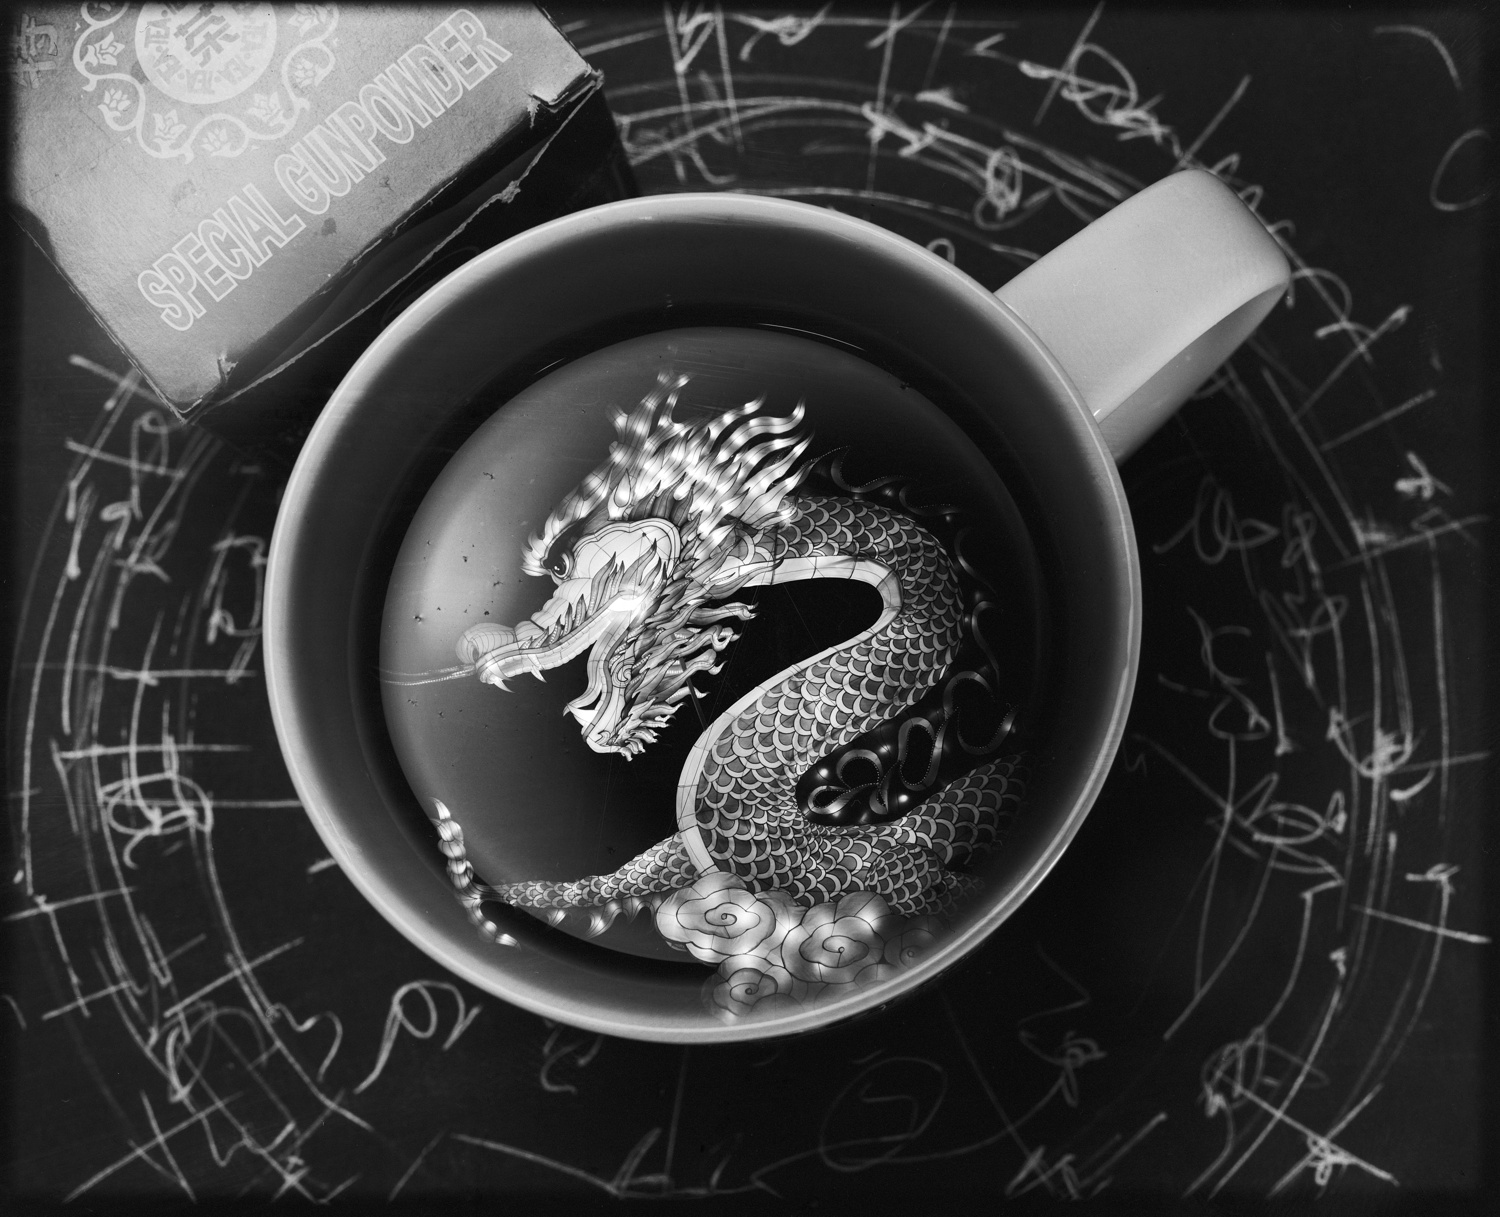 Special Gunpowder: Dragon | Copyright David Allen